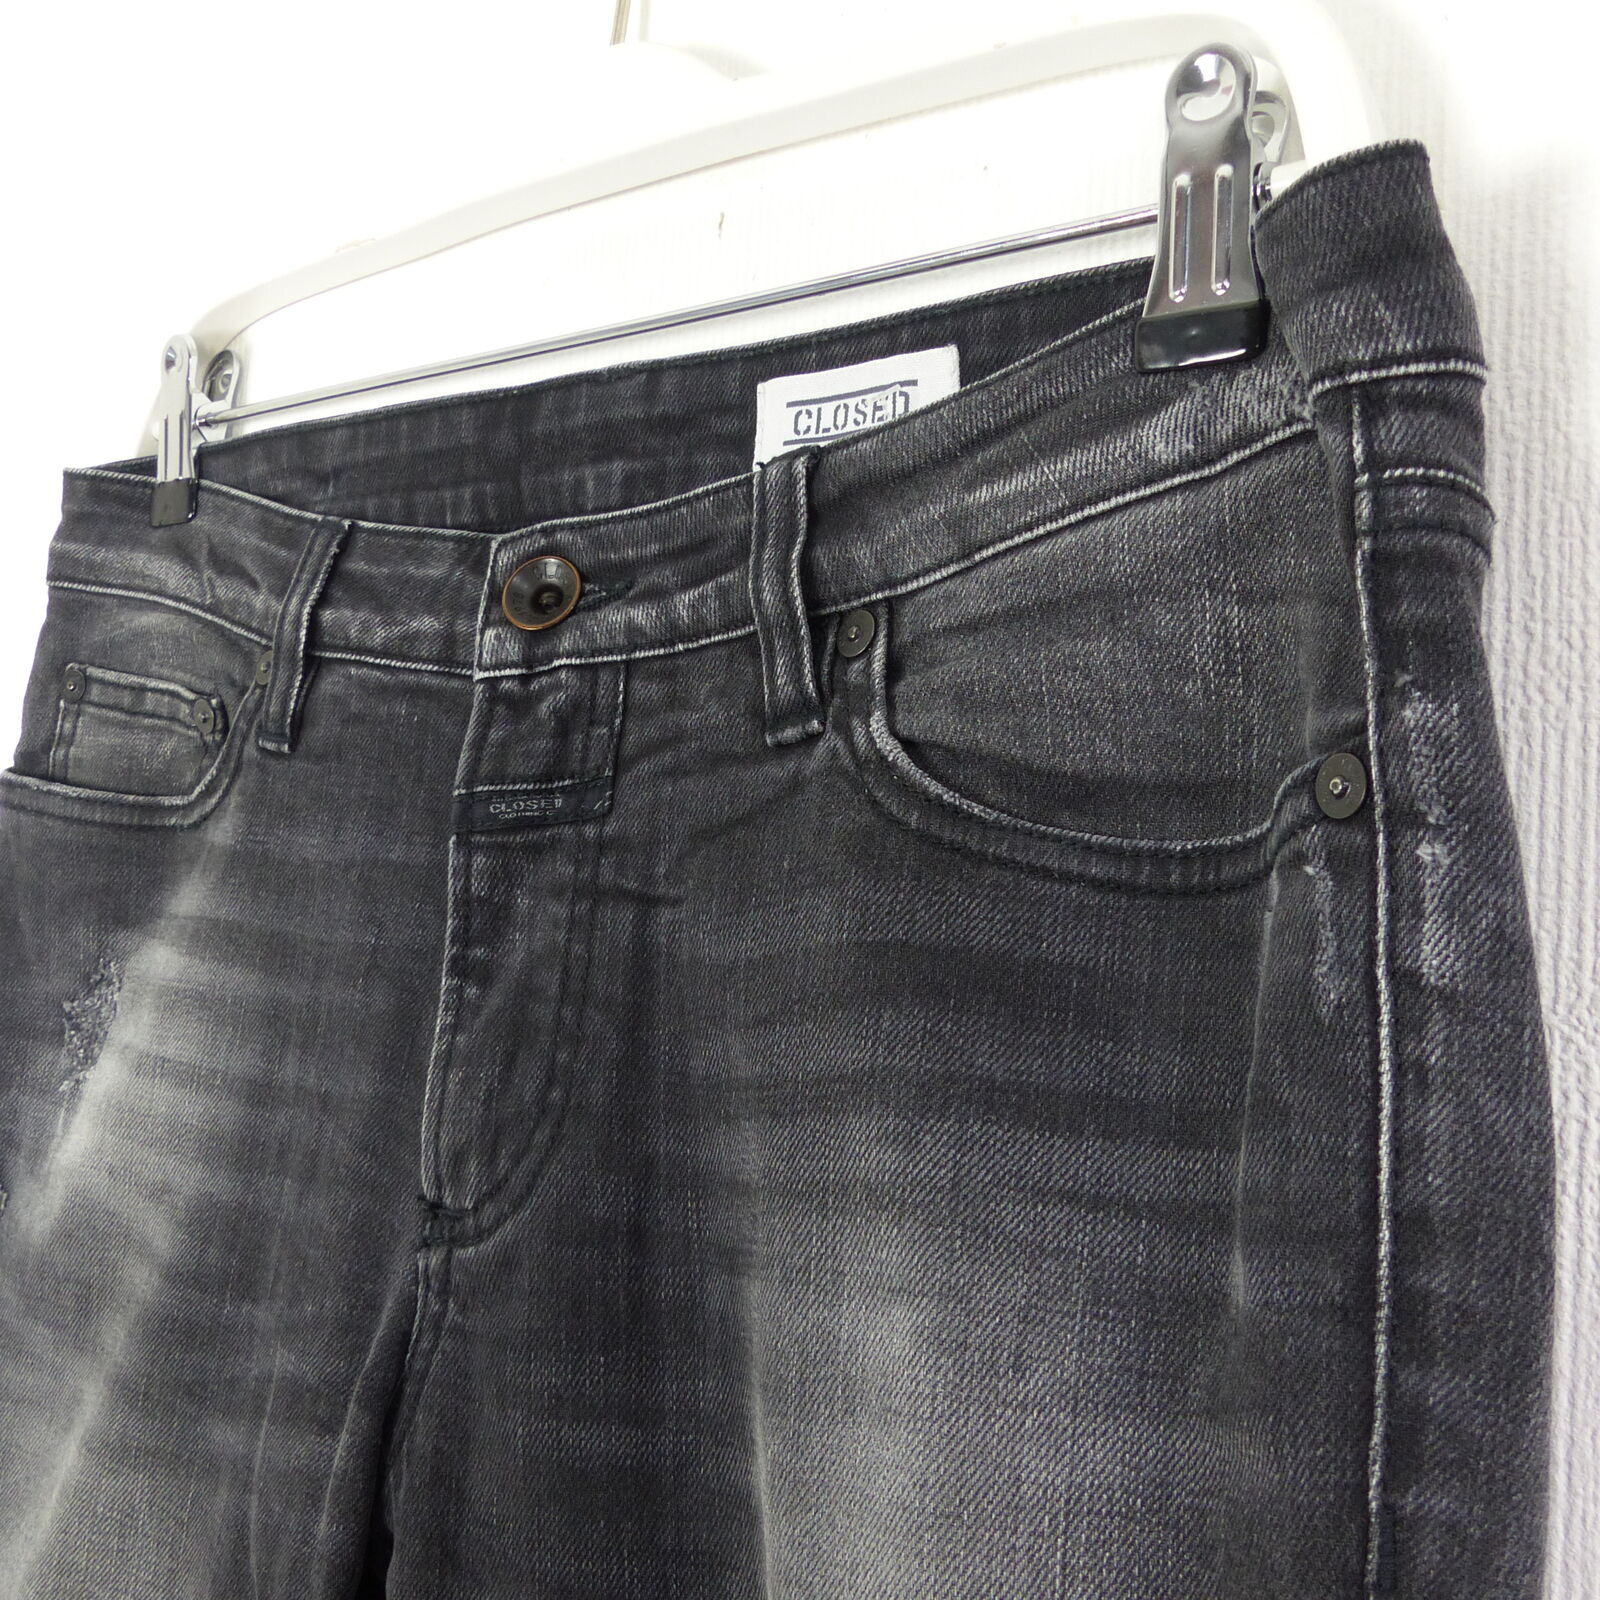 CLOSED Jeans Jeans Jeans Denim Pants Used-Look Schwarz Gr. W26 (D53) | Für Ihre Wahl